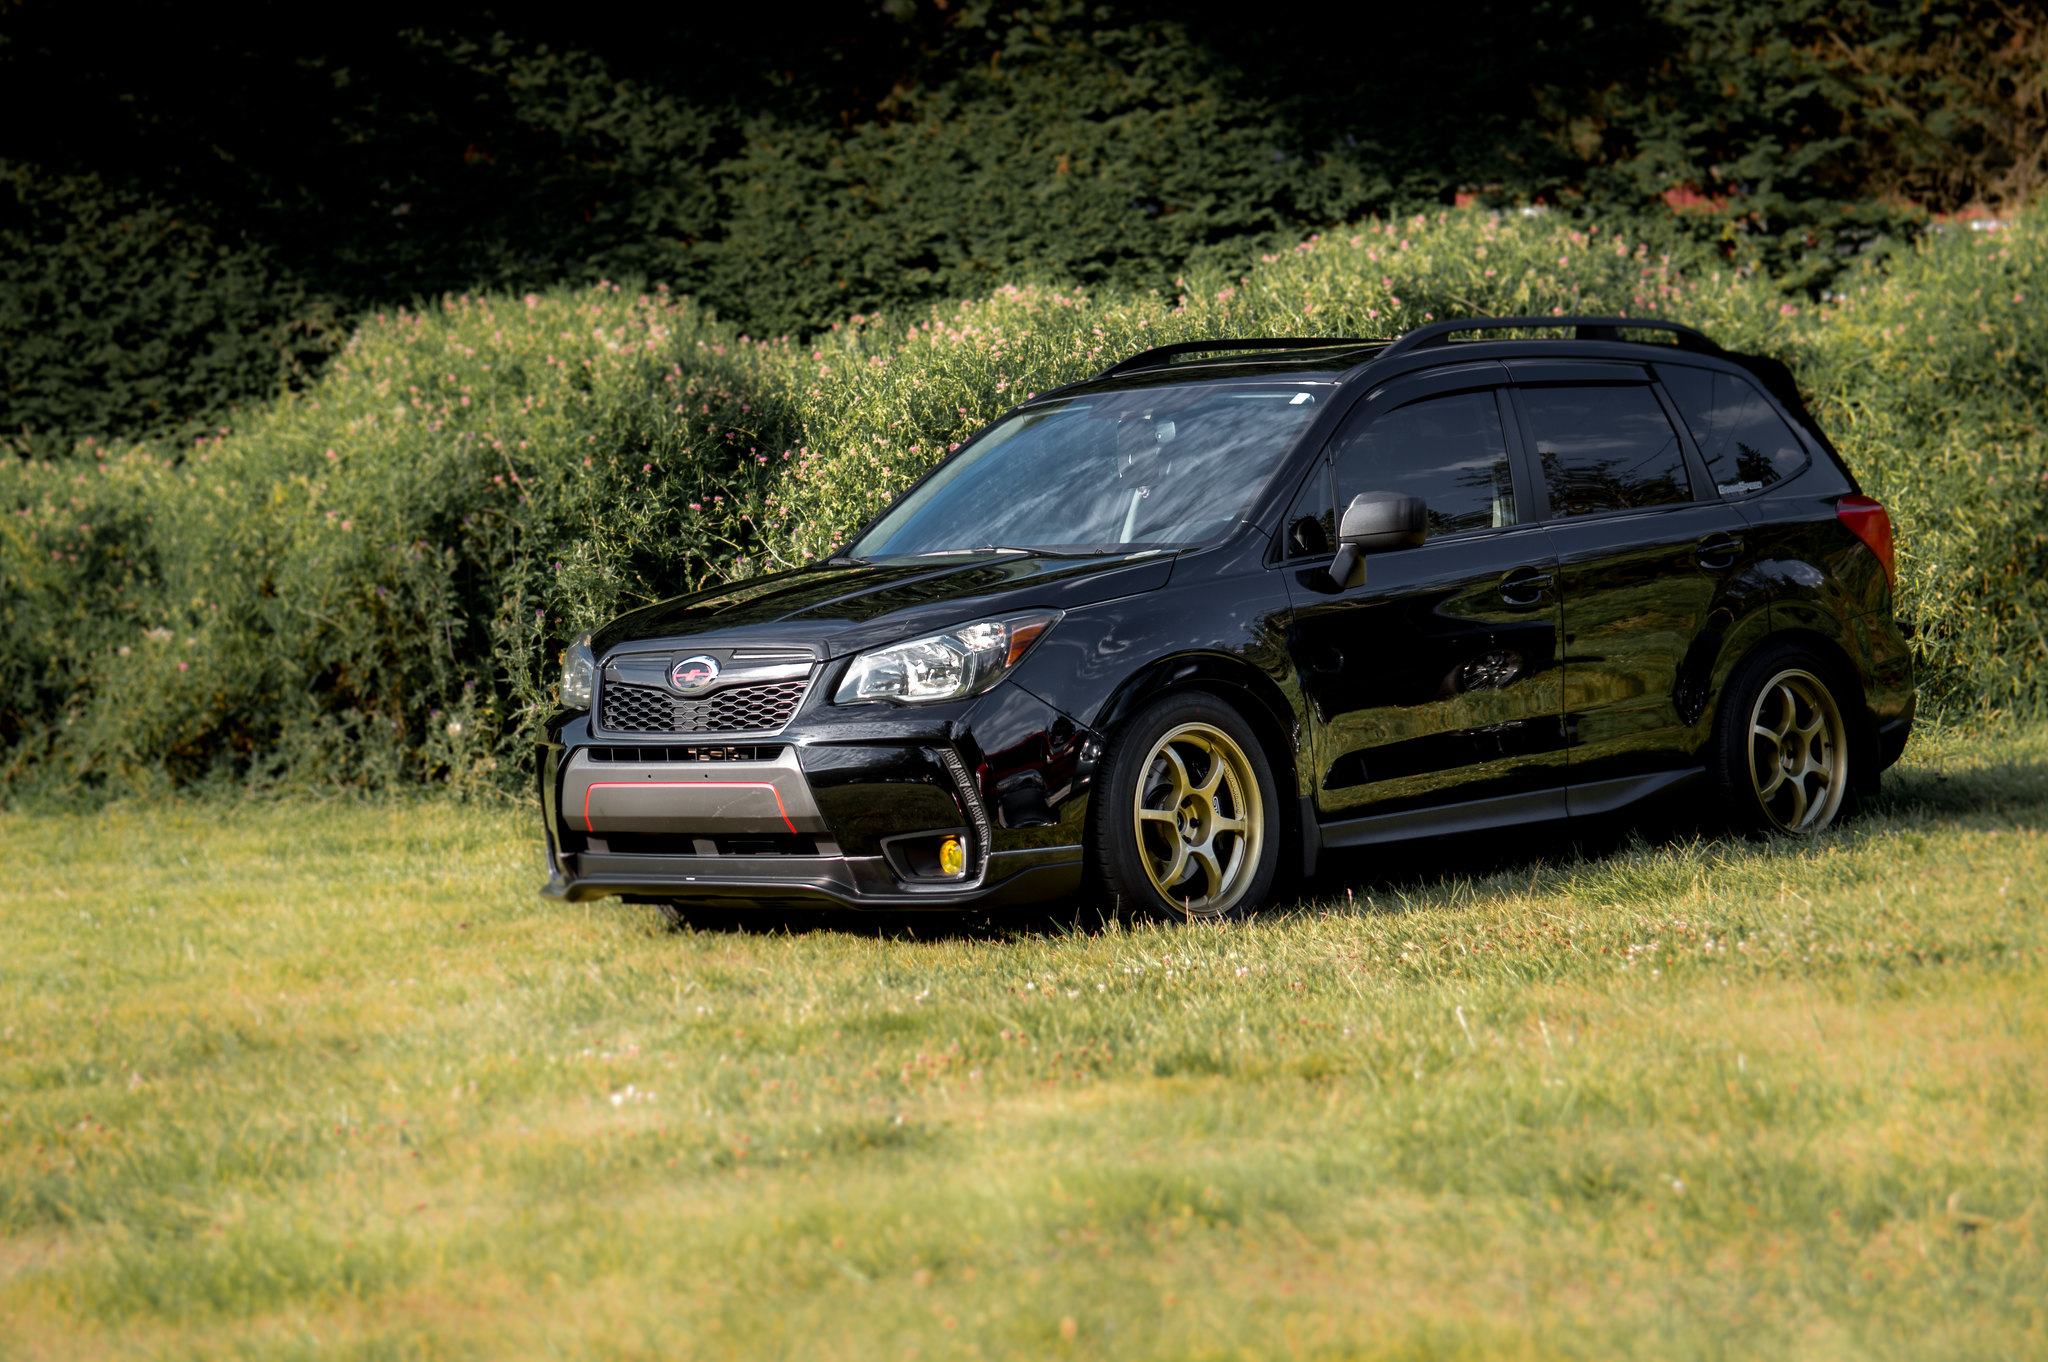 14 Sway S 14 Xt Story Subaru Forester Owners Forum